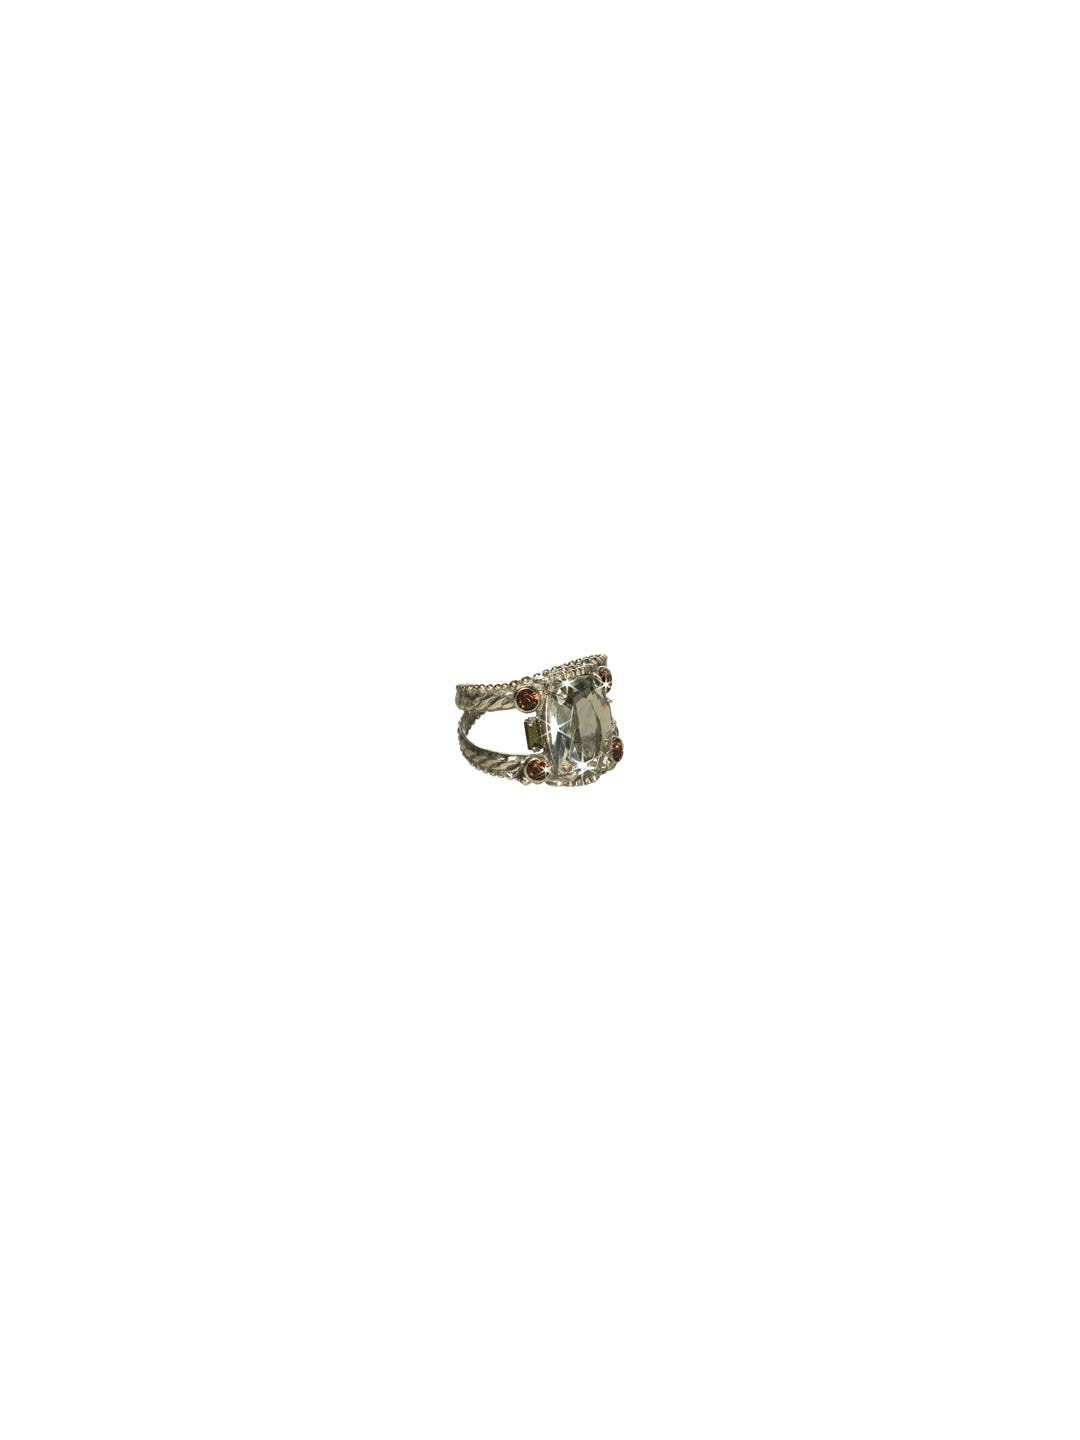 Crystal Geometry Ring - RCK4ASCJ